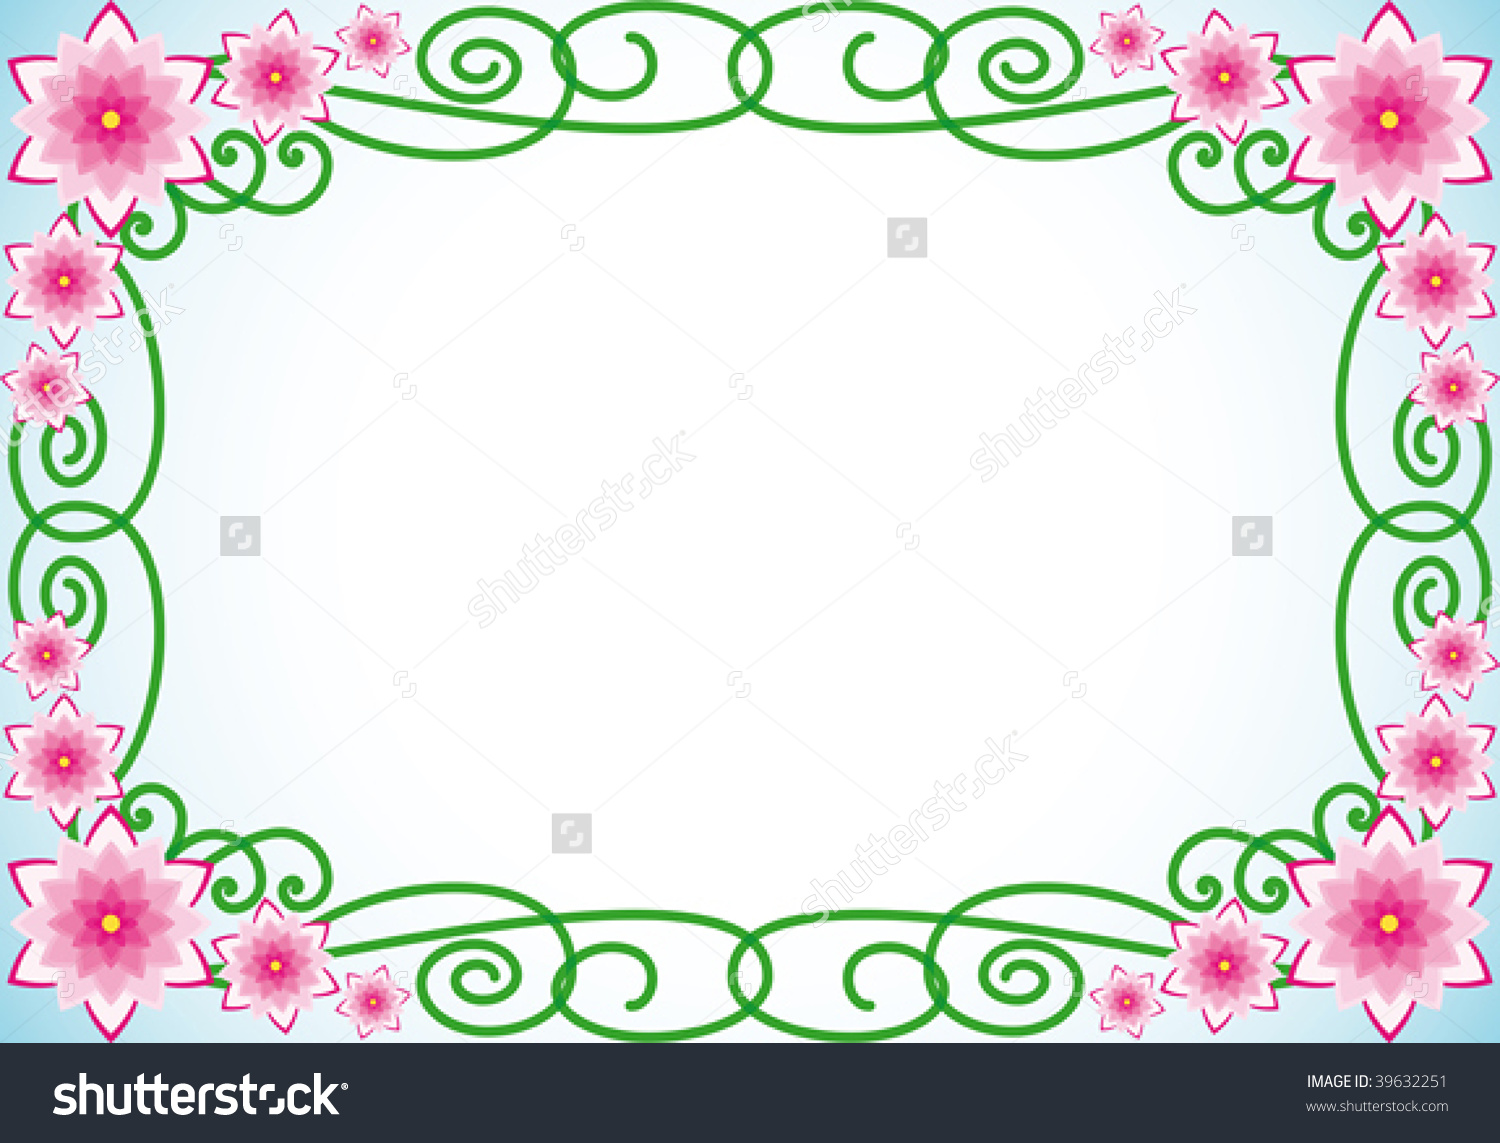 Floral Border With Pink Flowers And Green Spiral Leaves Stock.